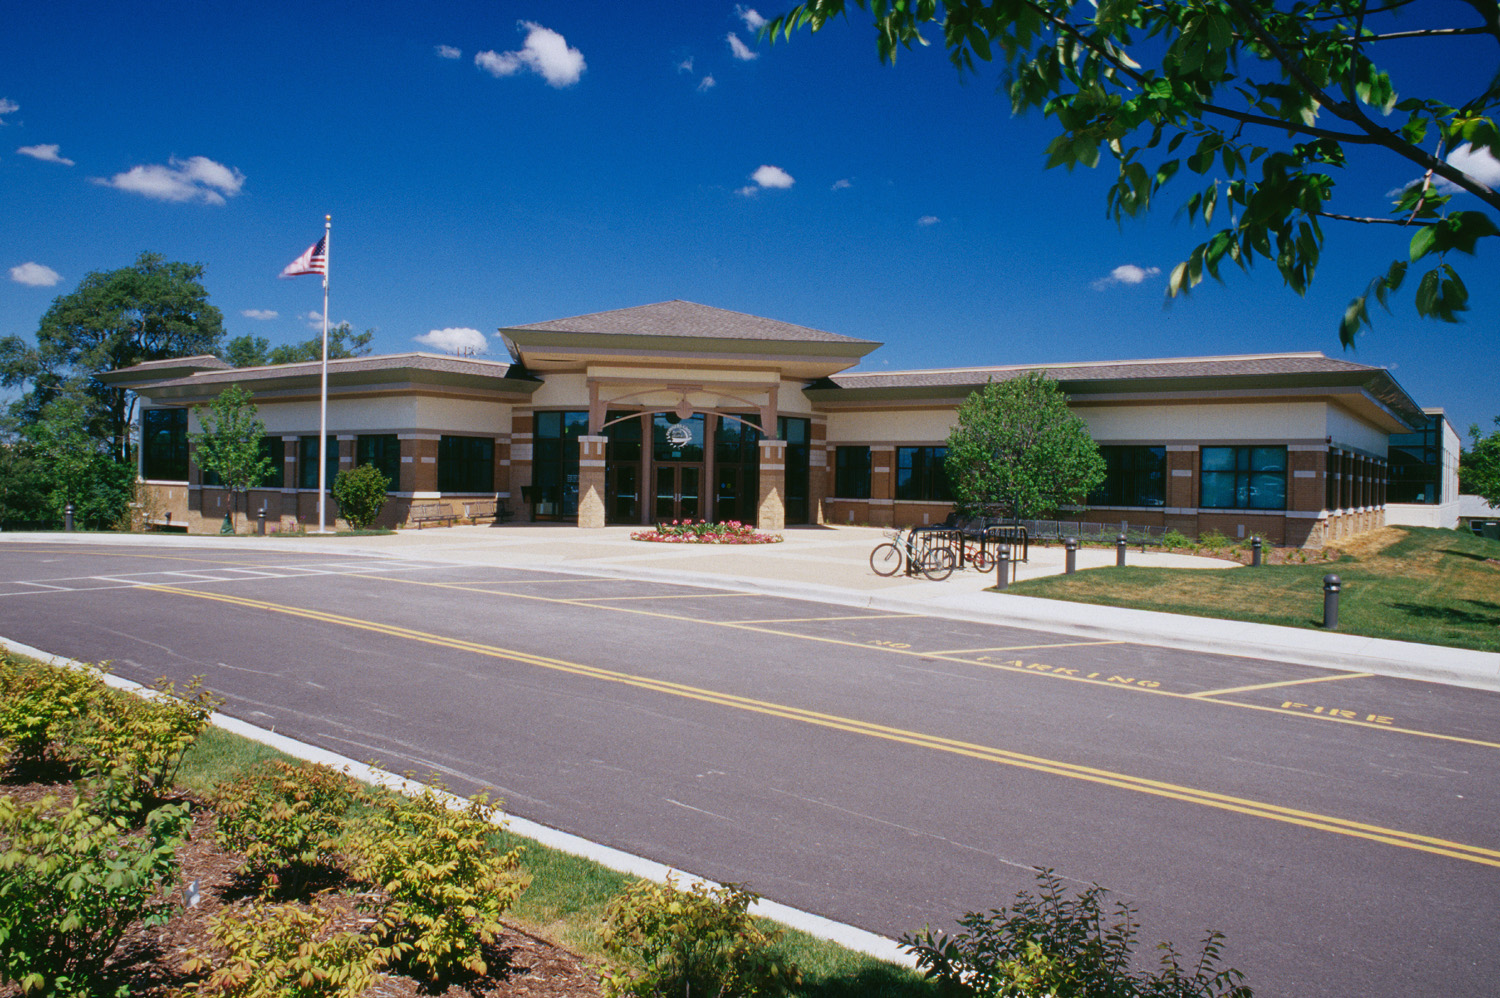 2000-046-21 Downers Grove Rec Center ext with road.jpg